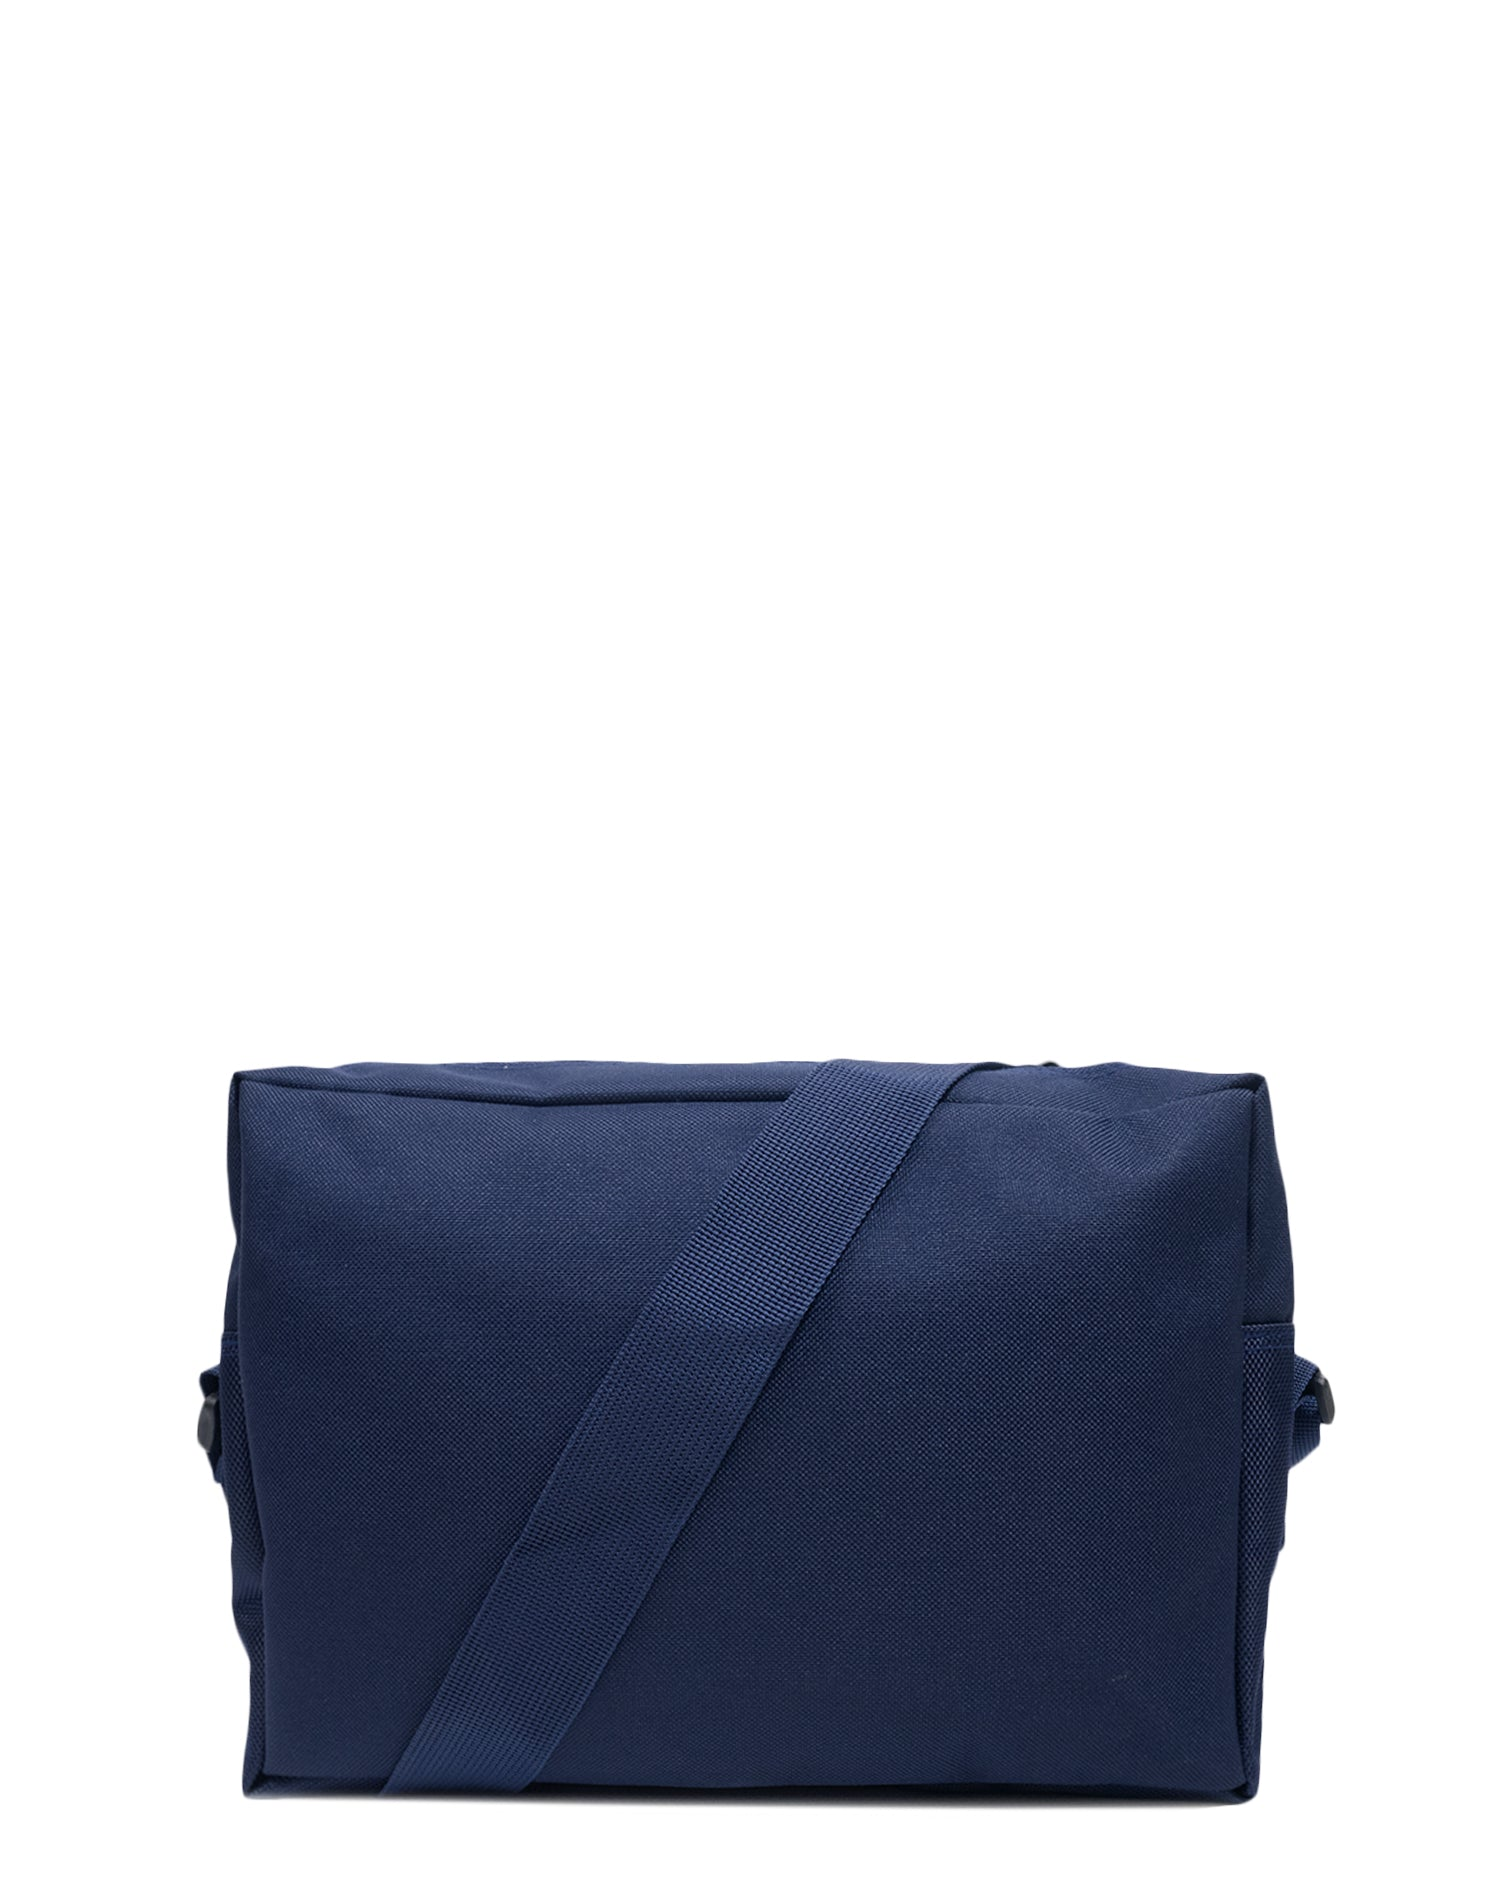 Navy Canvas Shoulder Bag.藏青色帆布斜揹袋